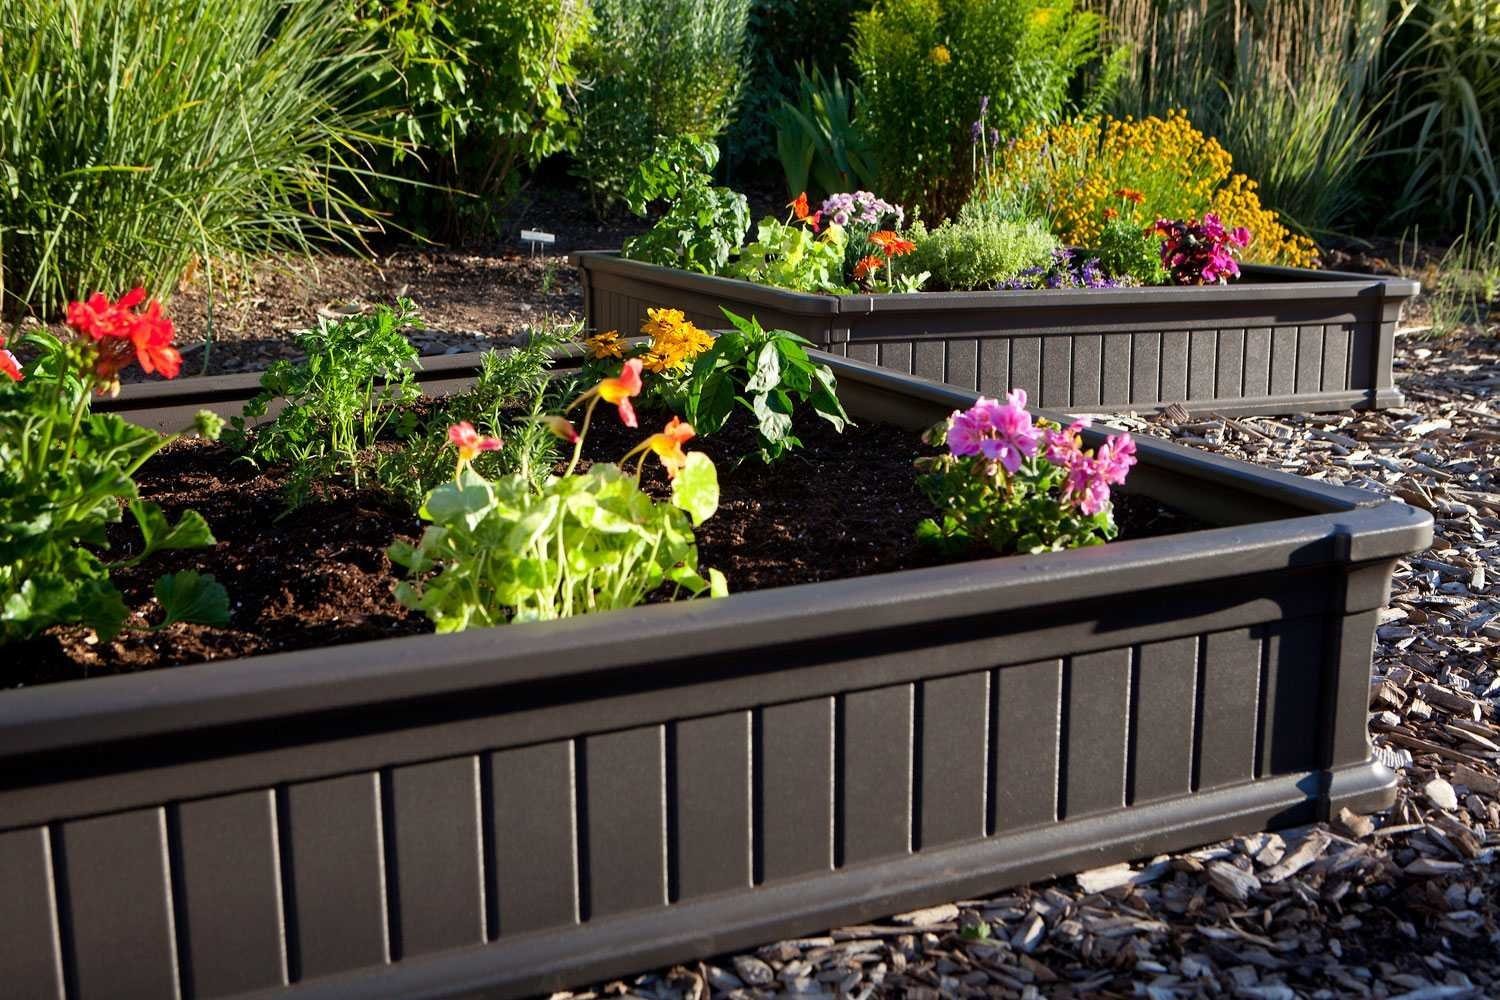 10 inspiring diy raised garden beds ideas plans and for Garden design kits